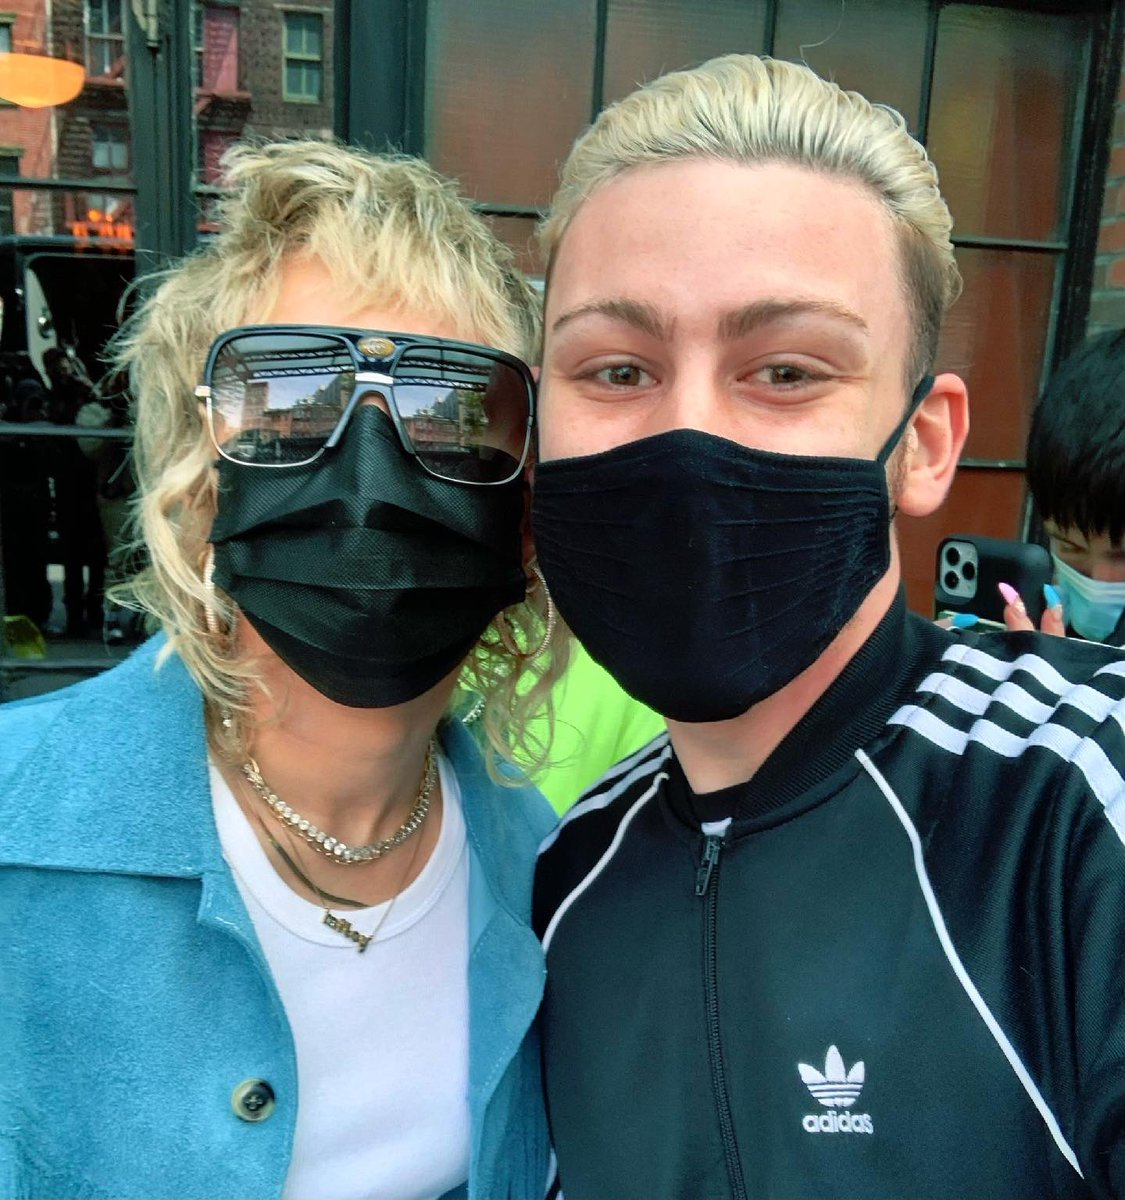 Reunited with my favorite Rockstar🤍 I love you @mileycyrus welcome back to NYC!!! https://t.co/mu0KvsNdIW